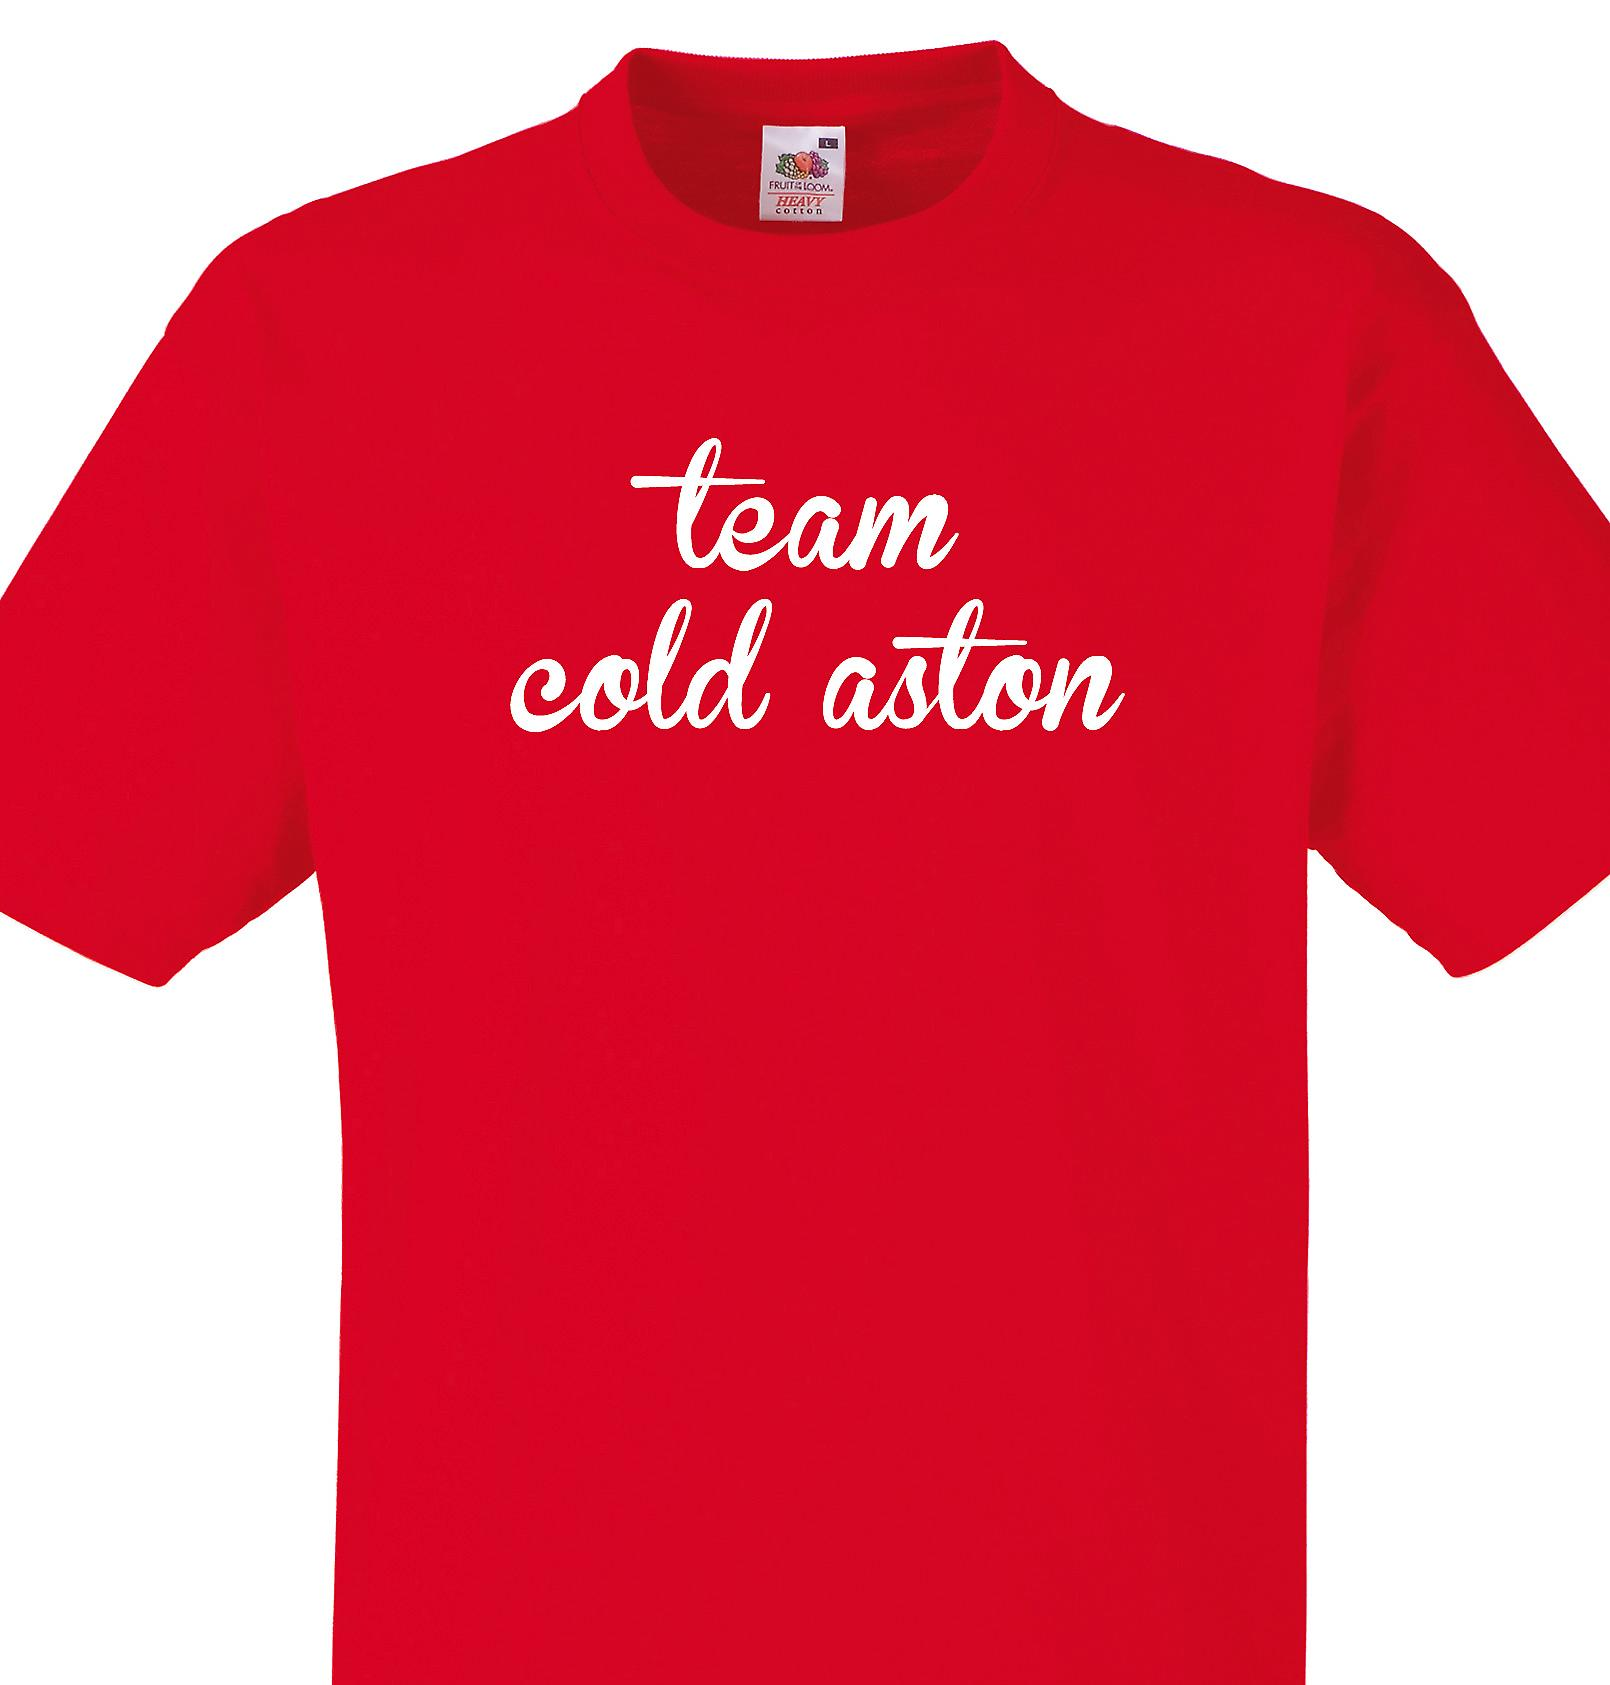 Team Cold aston Red T shirt